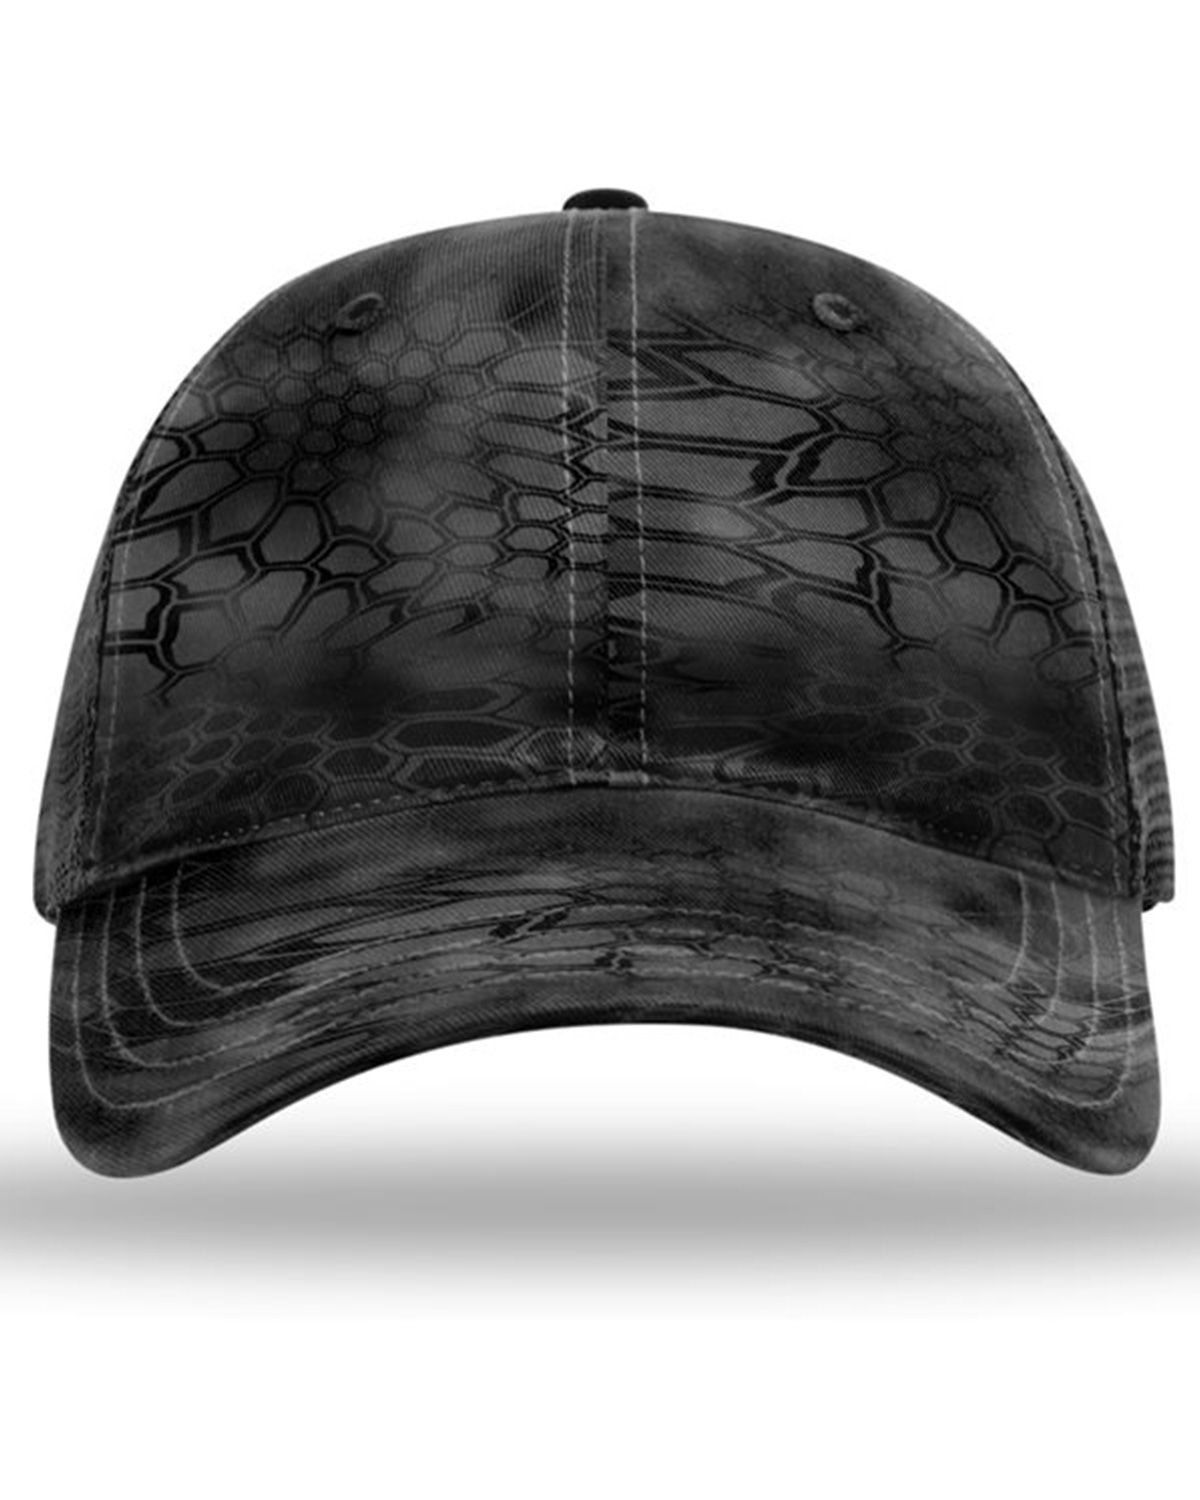 Richardson 111p Camo Washed Trucker Cap - Free Shipping Available aceed5a75e84